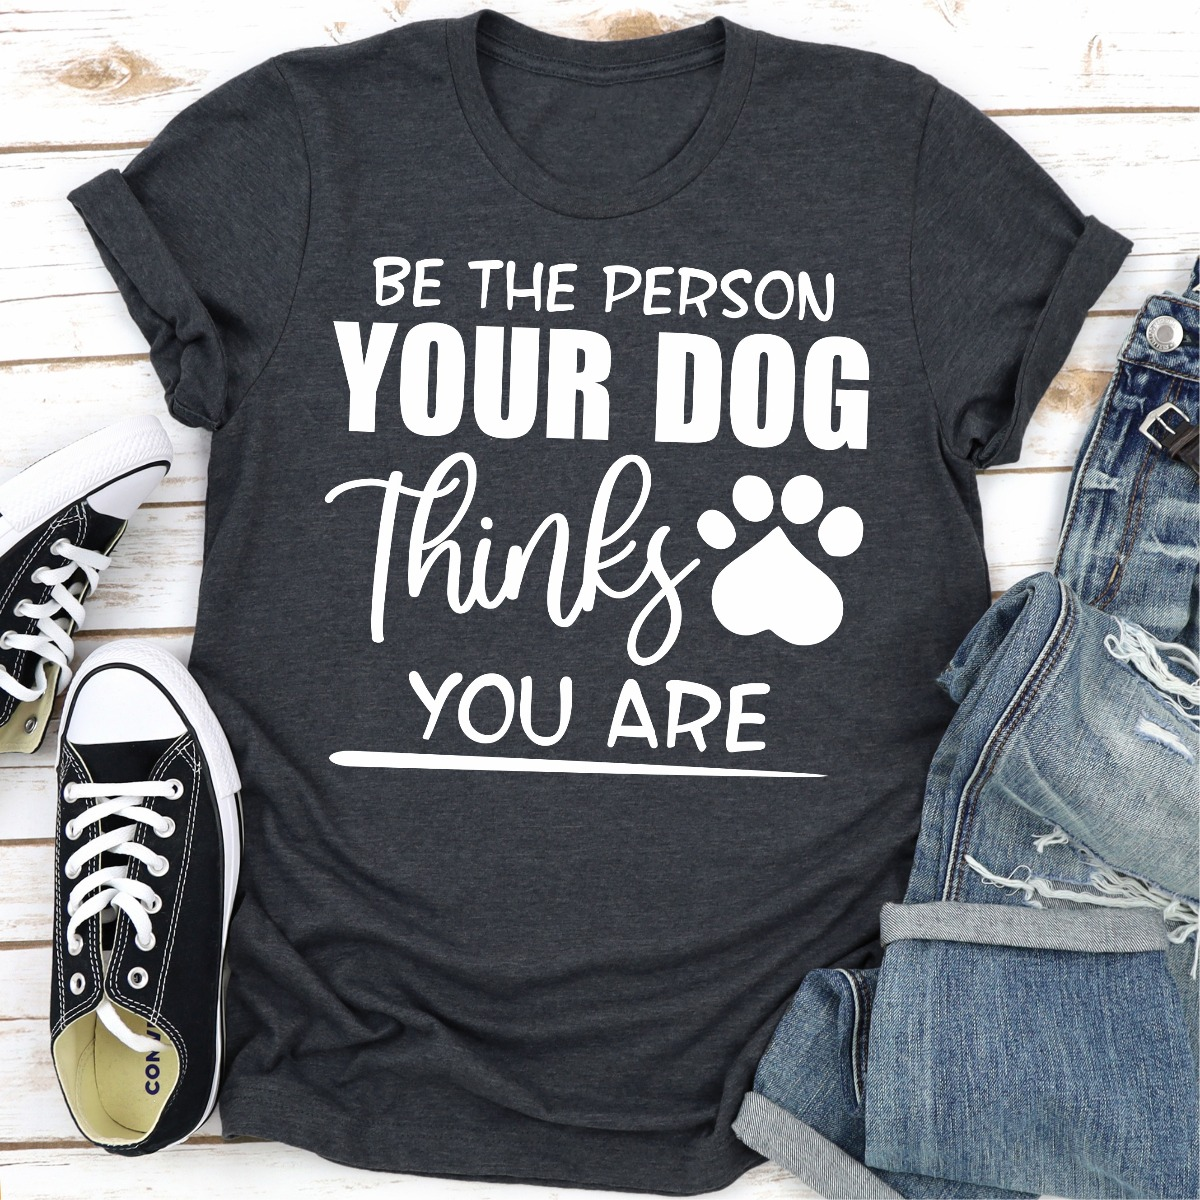 Be The Person Your Dog Thinks You Are (Dark Heather / 3Xl)